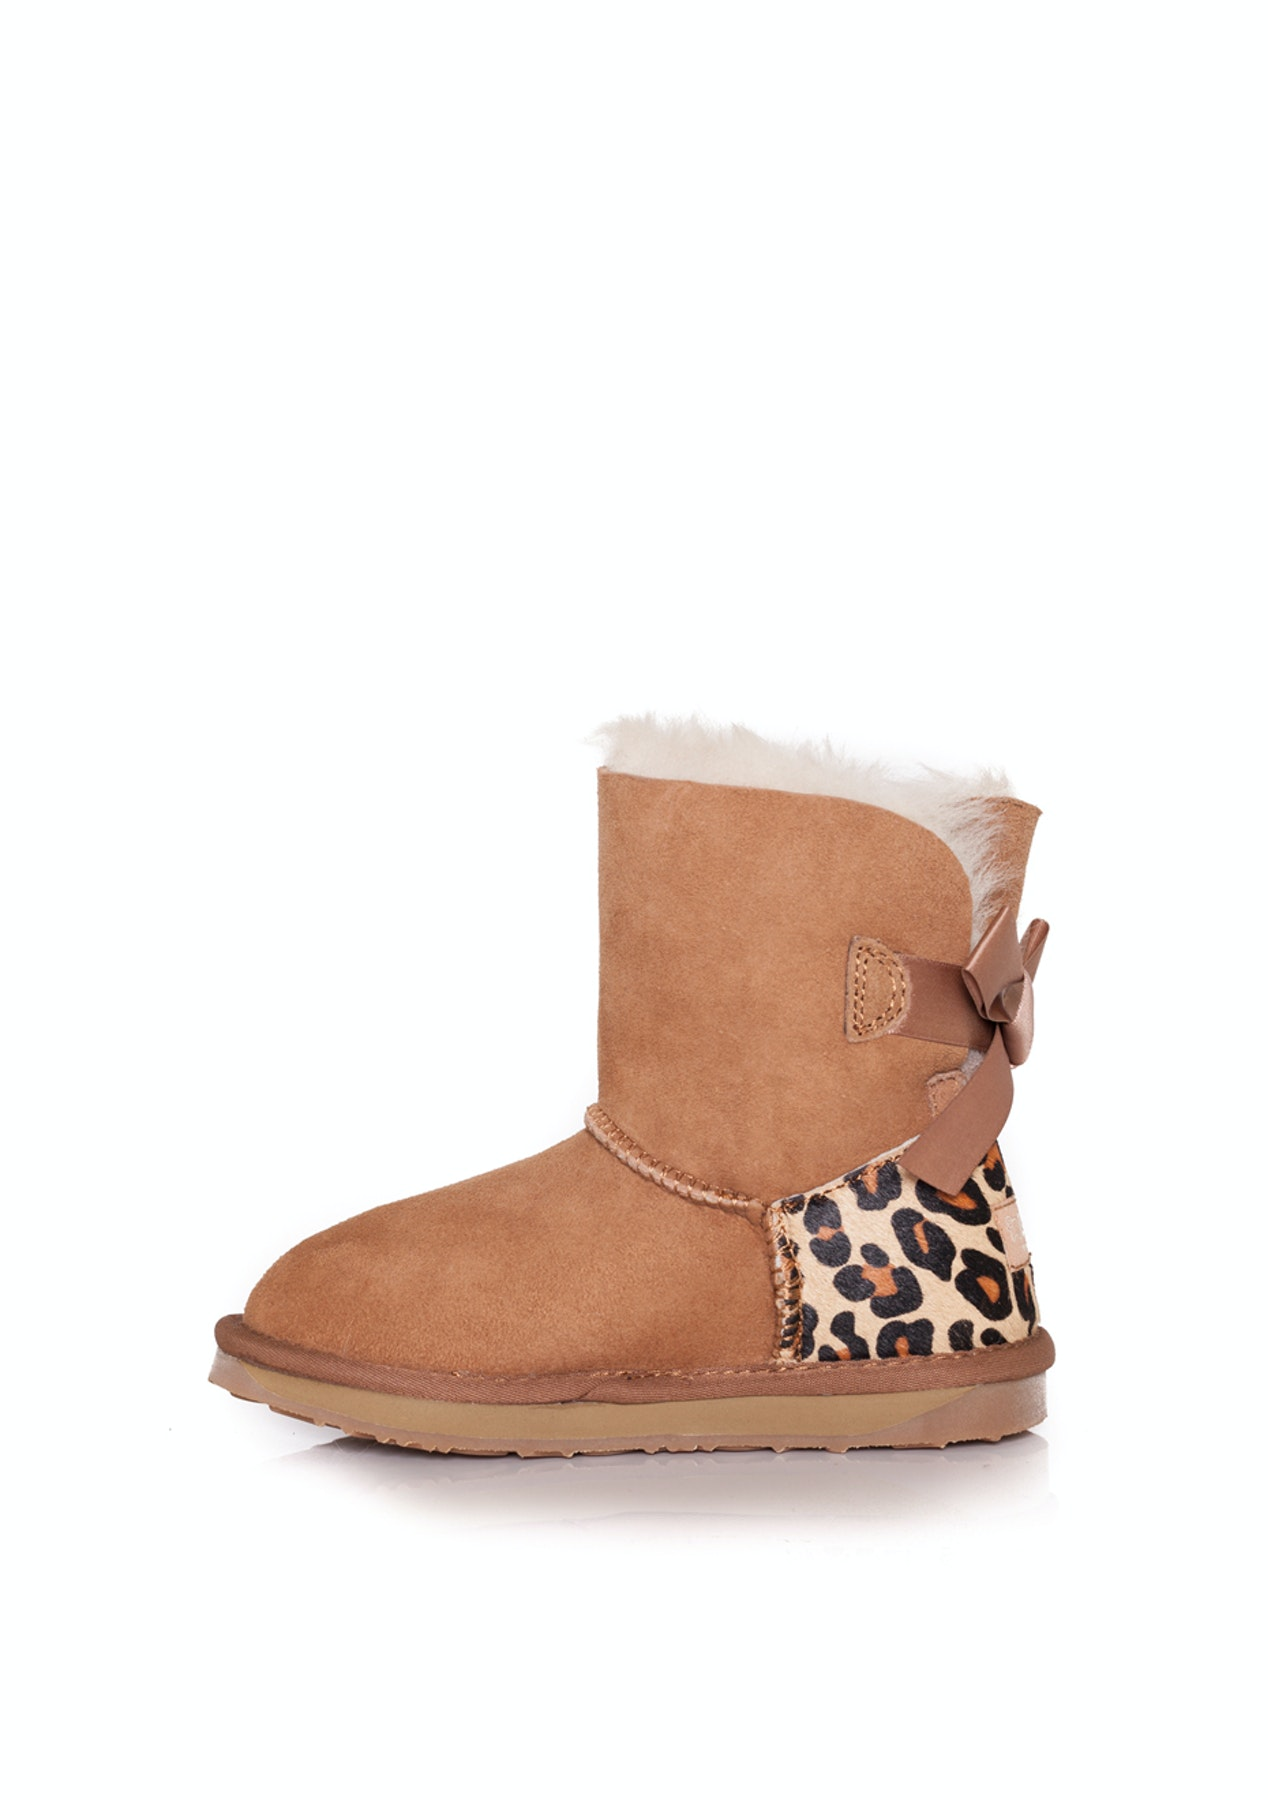 8e1875f90c7 Ever Uggs - Kids Mini Back Bow Backleopardchestnut - Kids Mini Back Bow  Backleopardchestnut